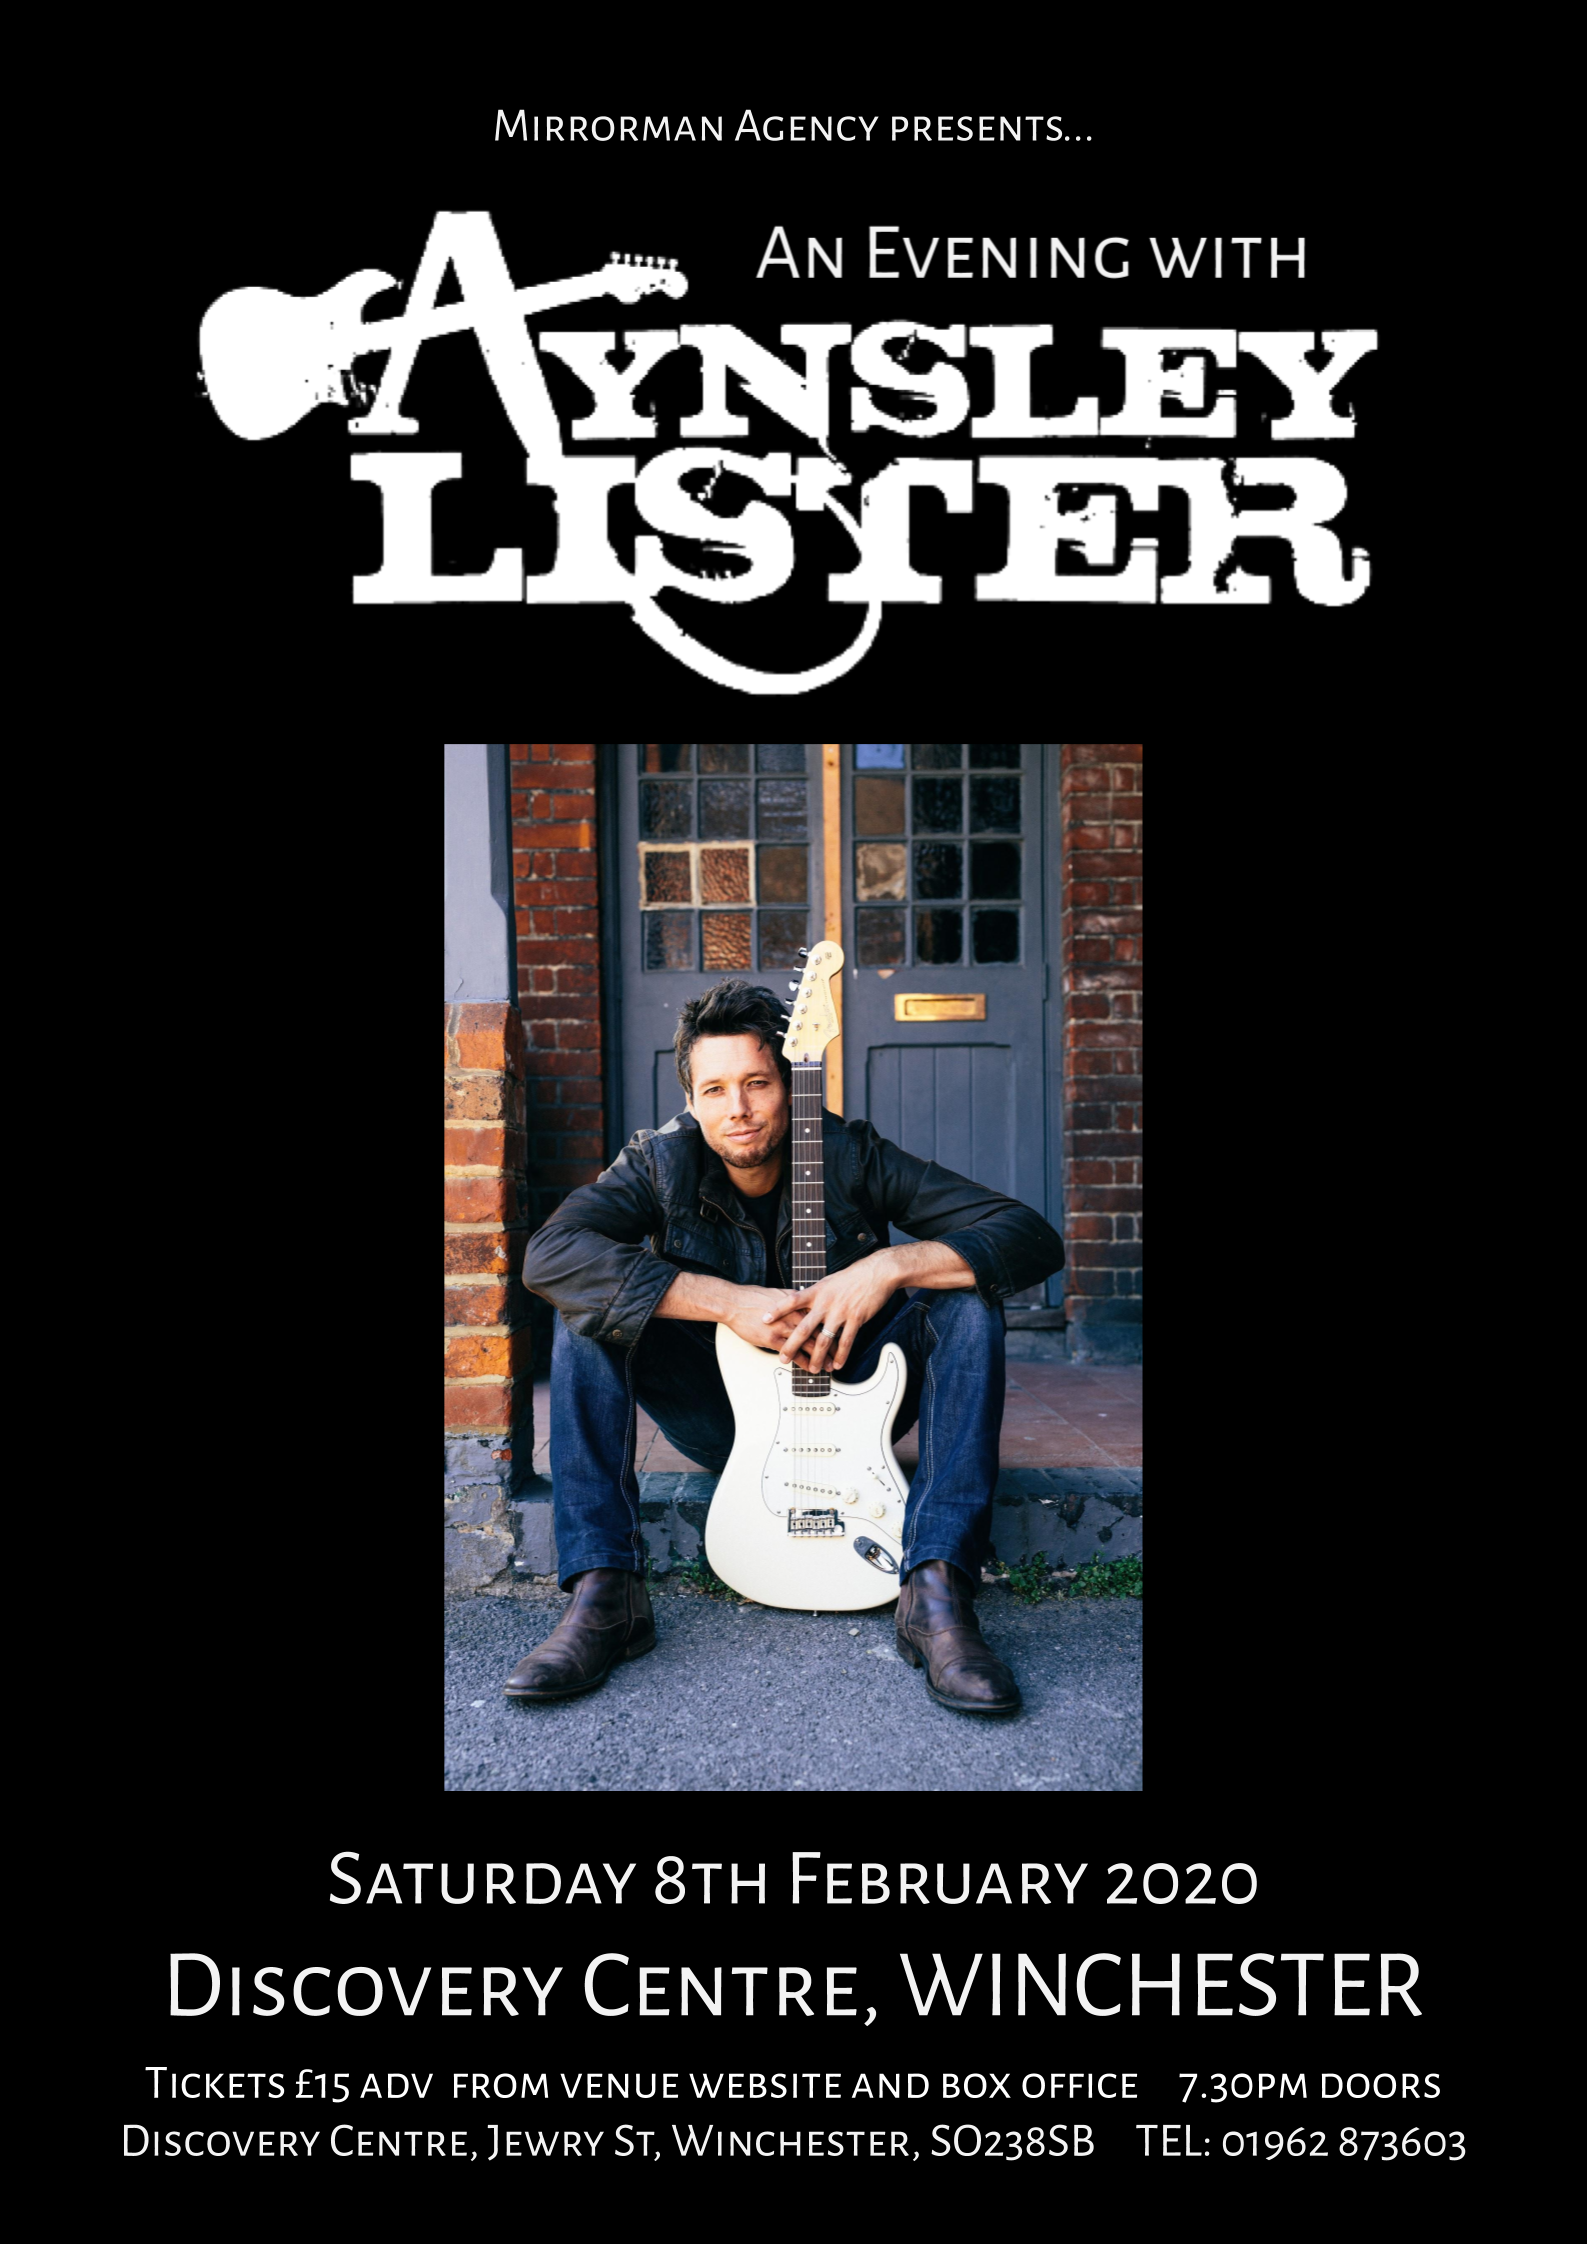 An Evening with Aynsley Lister at Discovery Centre, Winchester